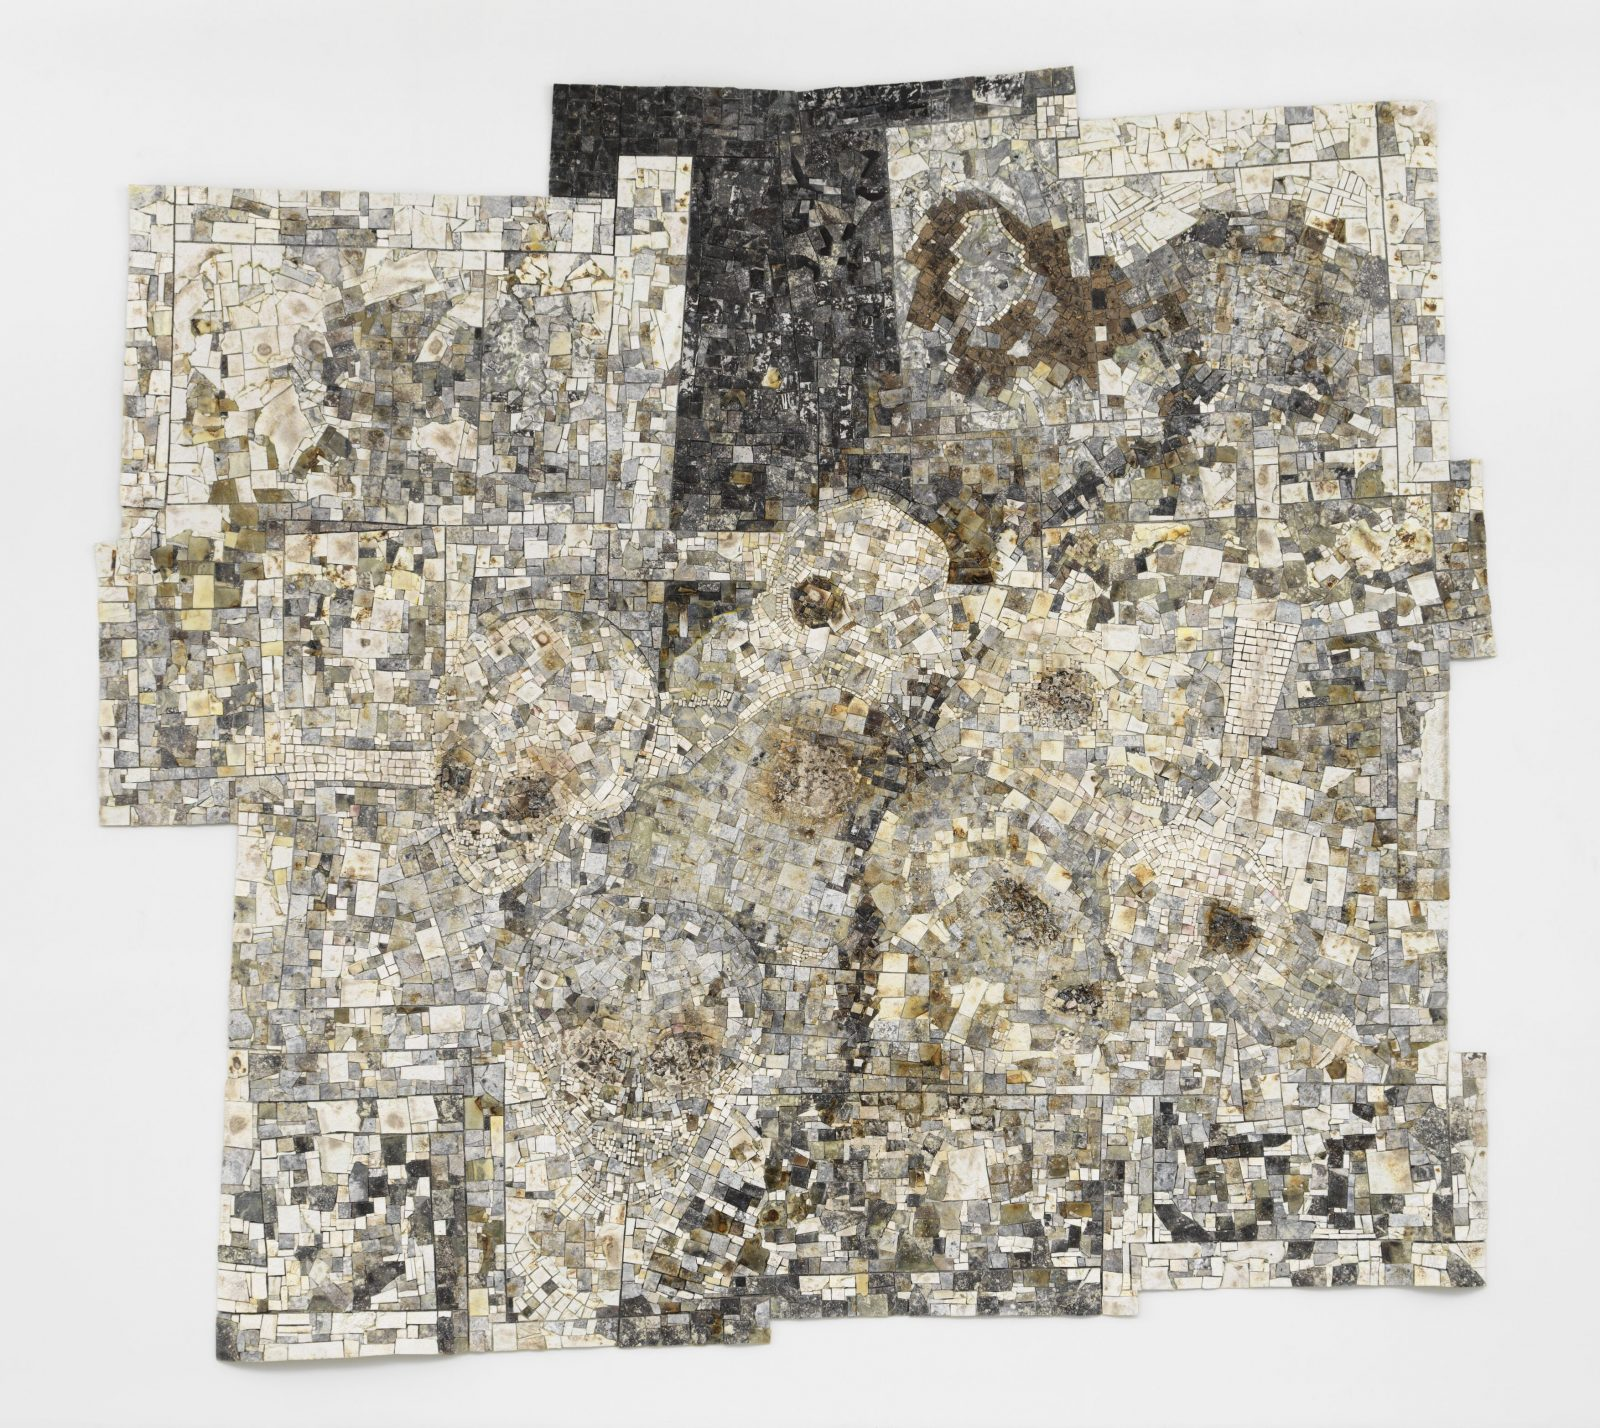 Jack Whitten, 'Memory Sites,' 1995. Acrylic on Canvas. 126 x 140 inches. (c) Jack Whitten Estate. Courtesy of the Jack Whitten Estate and Hauser & Wirth. Photo: Dan Bradca.